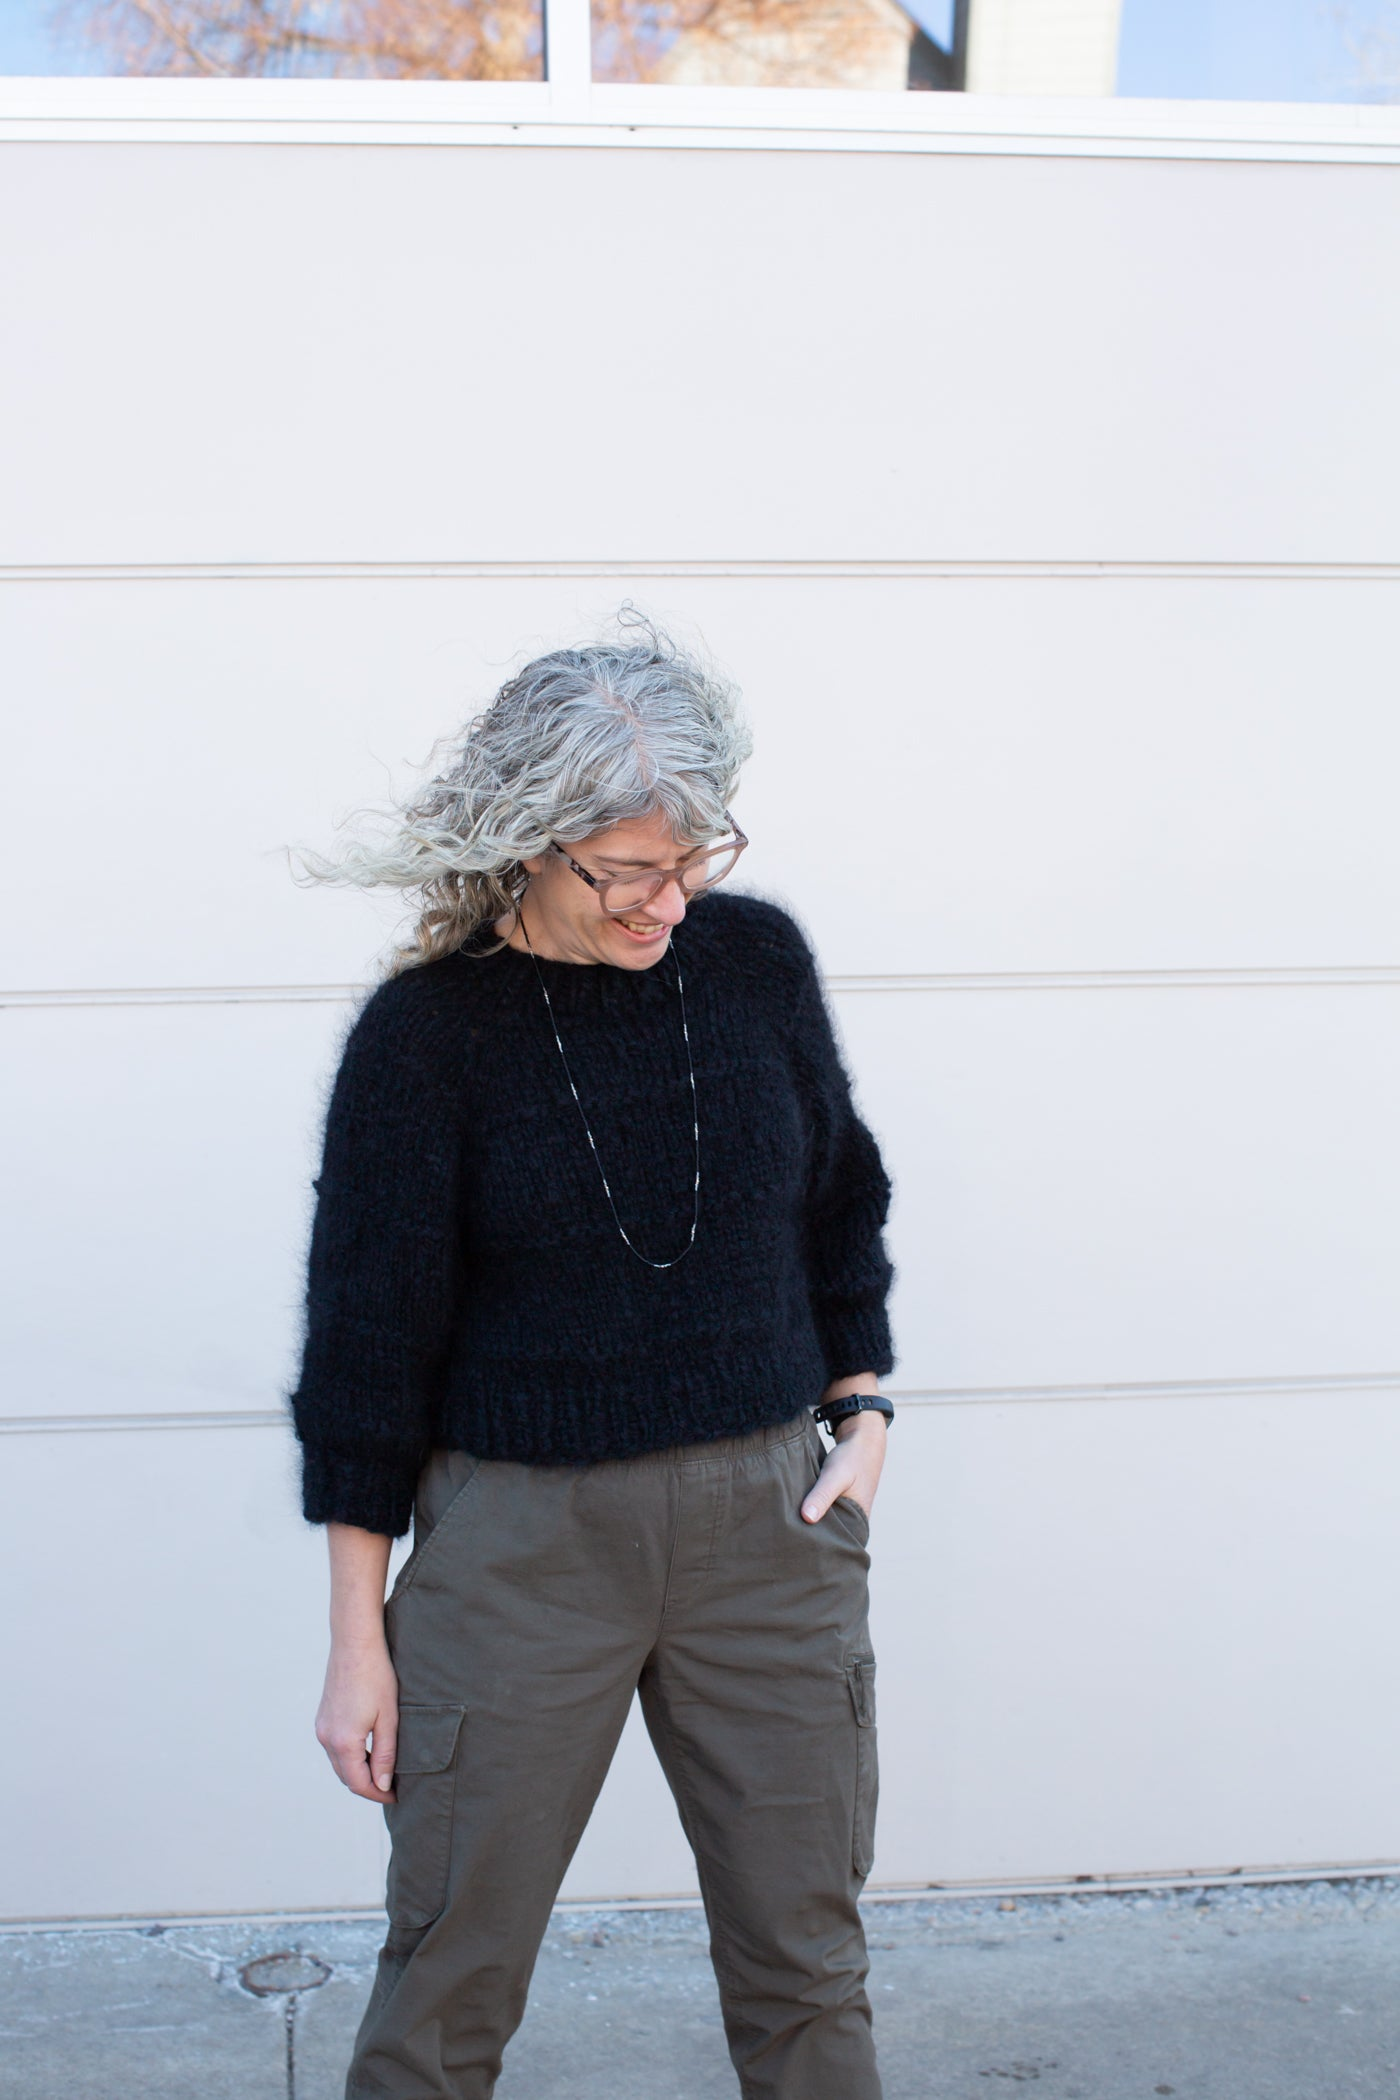 Jaime standing in front of a white wall with a black wool sweater, left hand in her pocket and green pants.  Jaime is wearing glasses, smiling and looking down to the left.